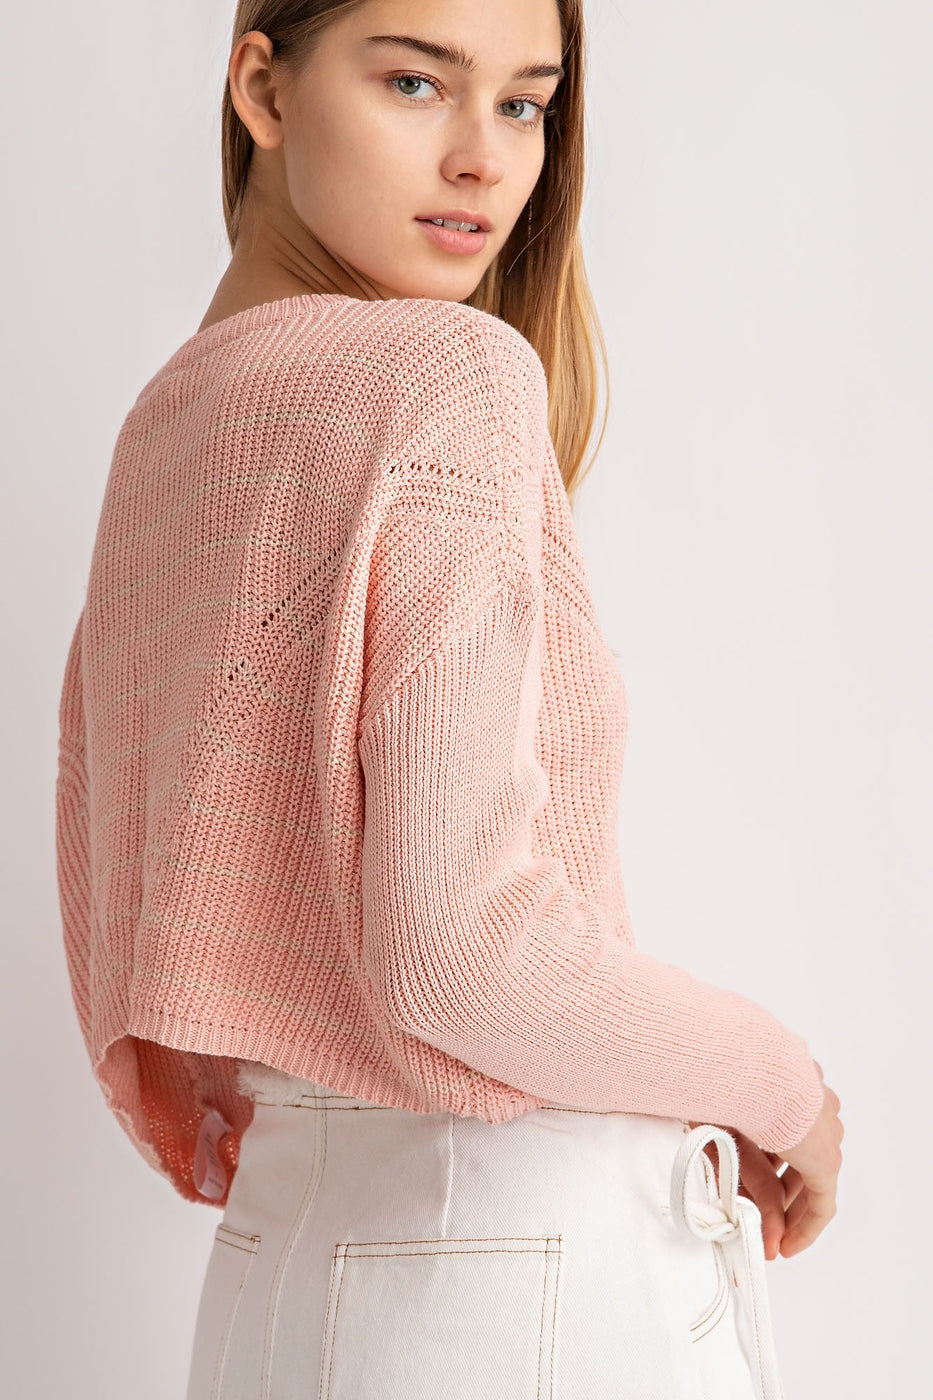 Long Sleeve Striped Sweater In Peach Siin Bees